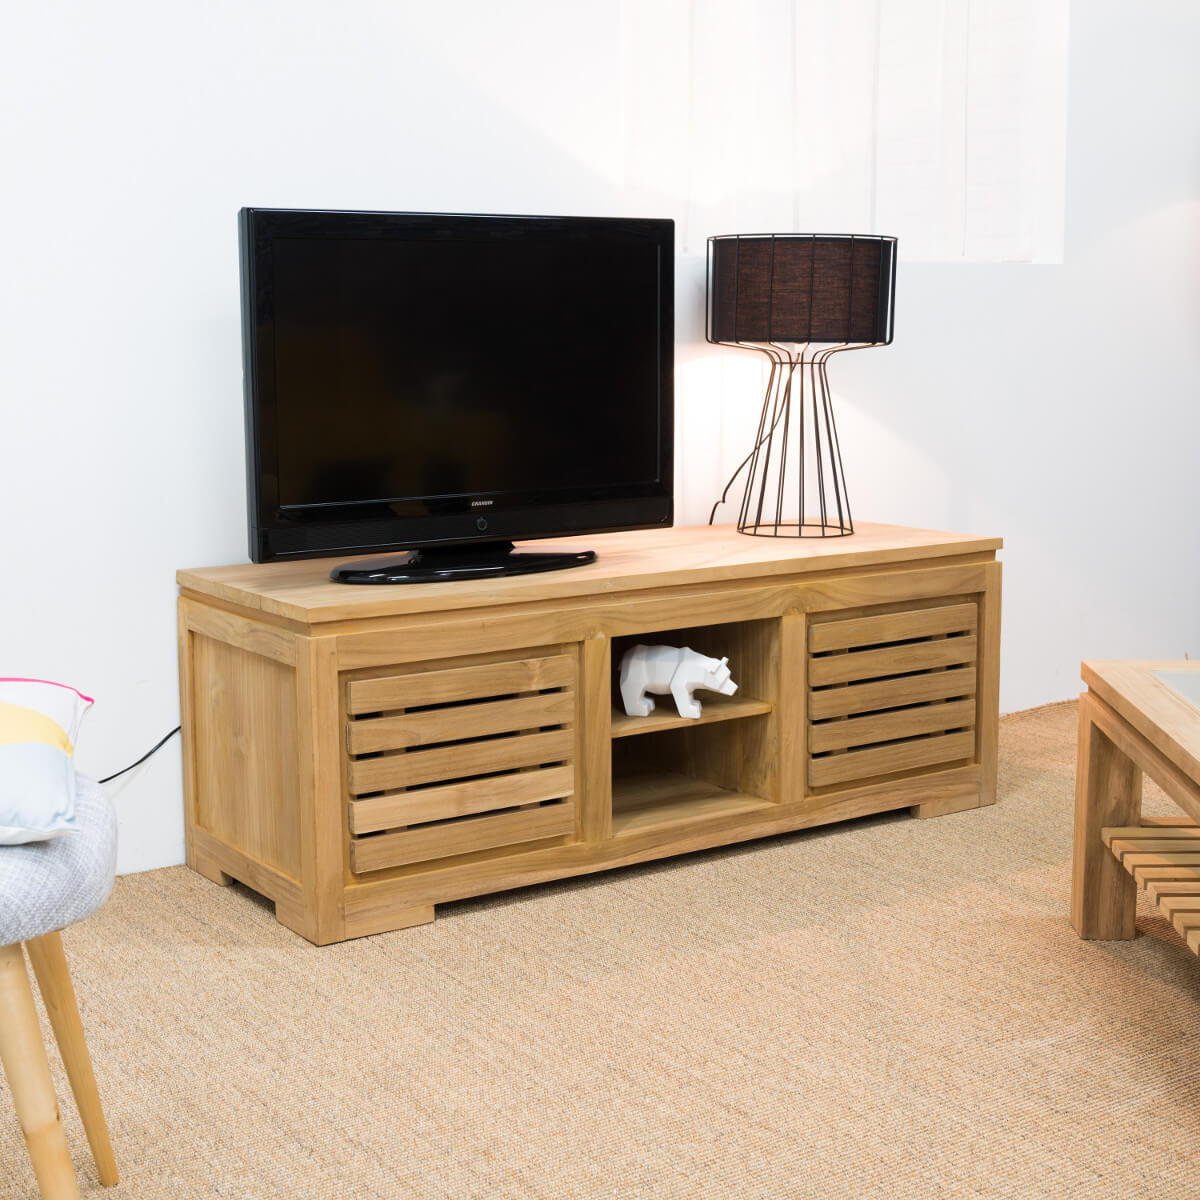 Meuble tv teck meuble tv bois naturel rectangle zen for Meuble a tv